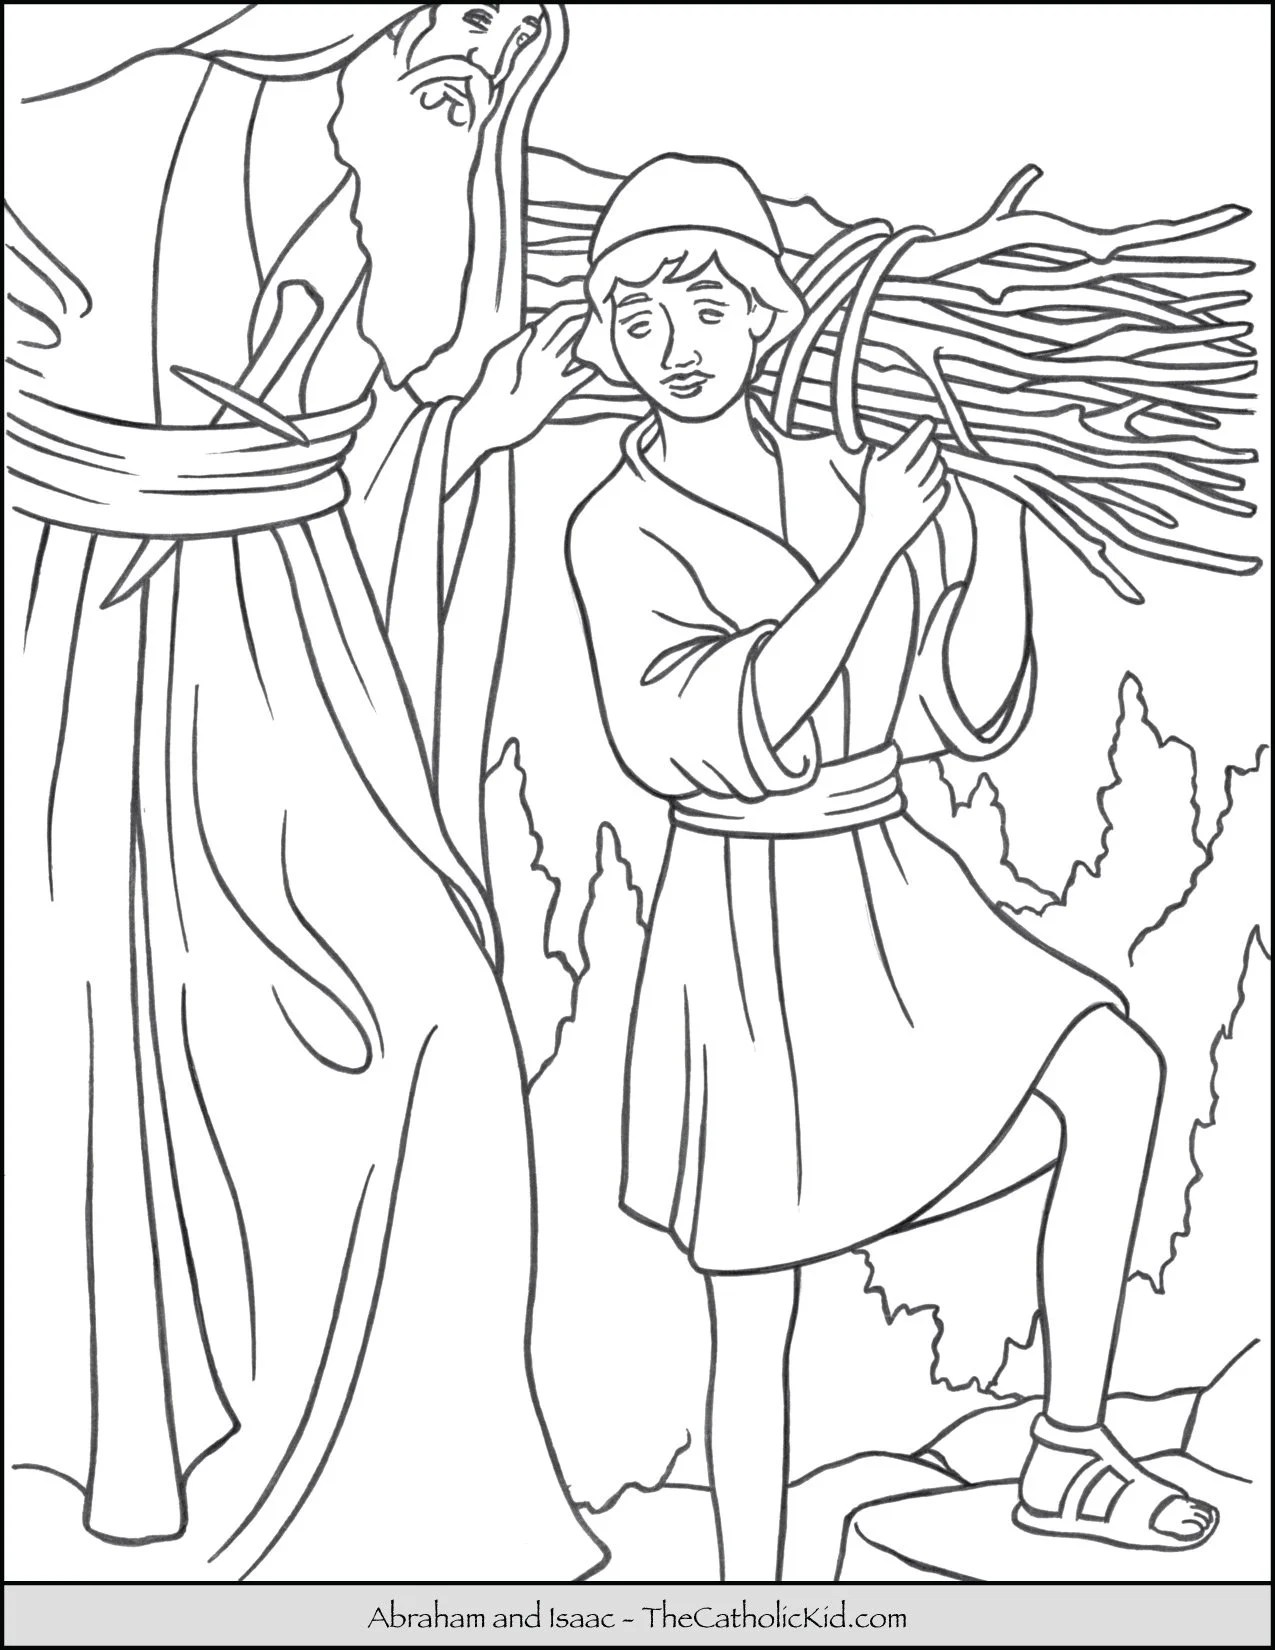 hight resolution of Abraham and Isaac Coloring Page - TheCatholicKid.com